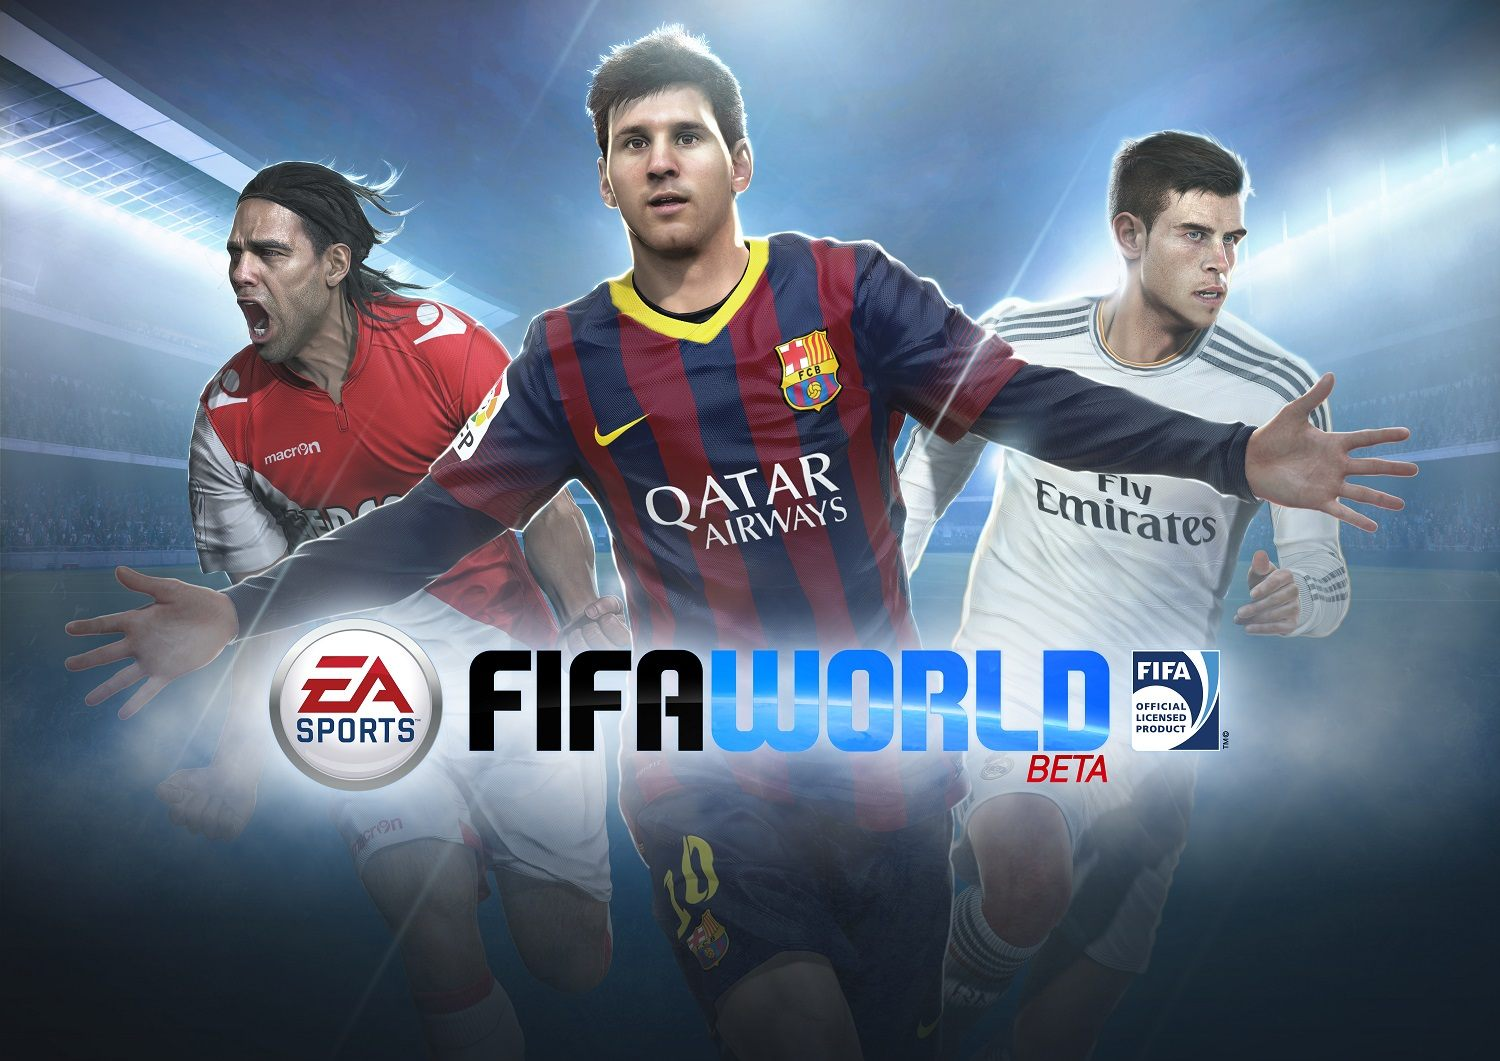 EA Sports FIFA World Gets A New Gameplay Engine